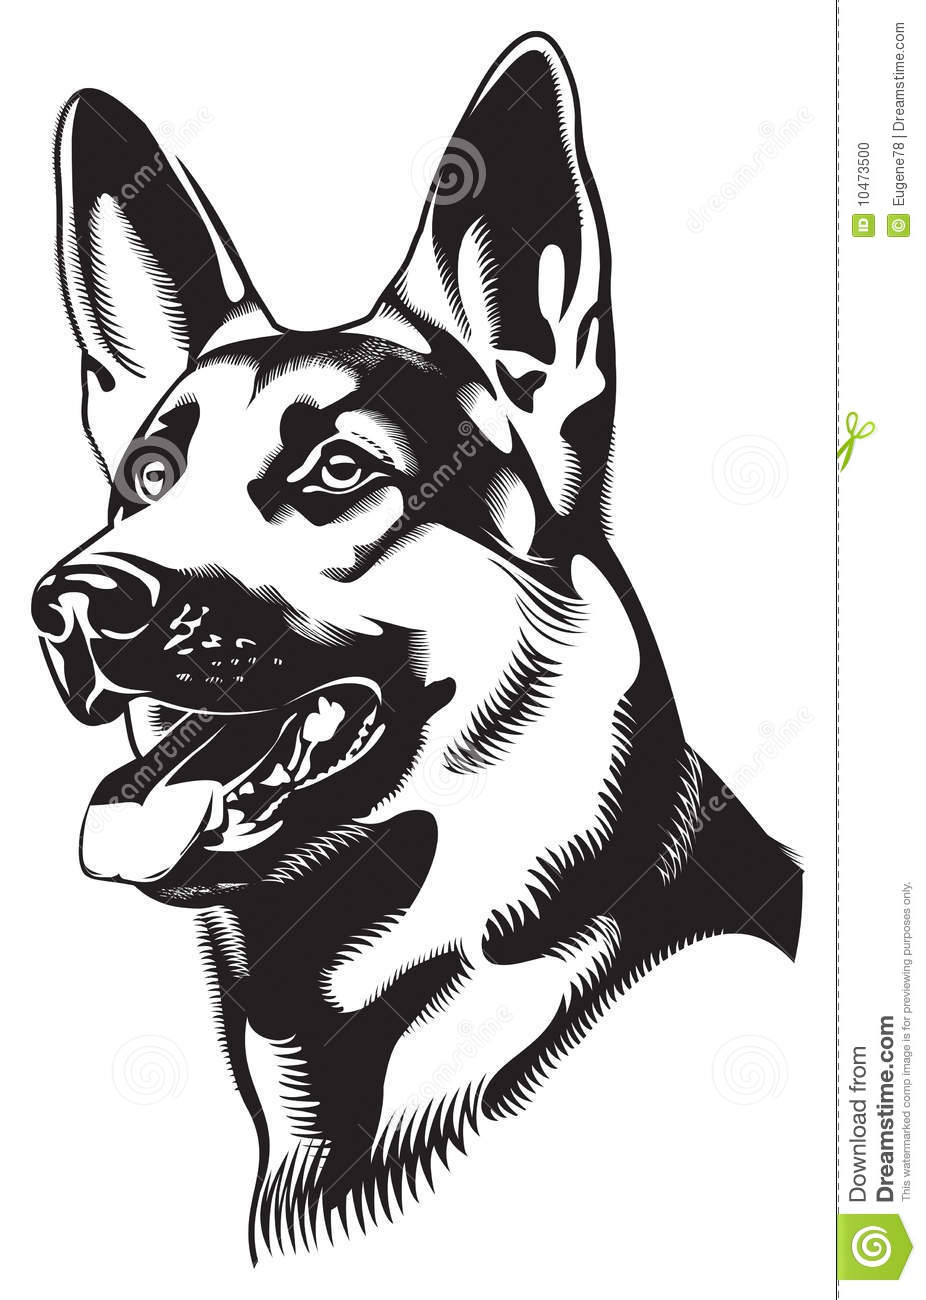 medium resolution of german shepherd dog clipart download